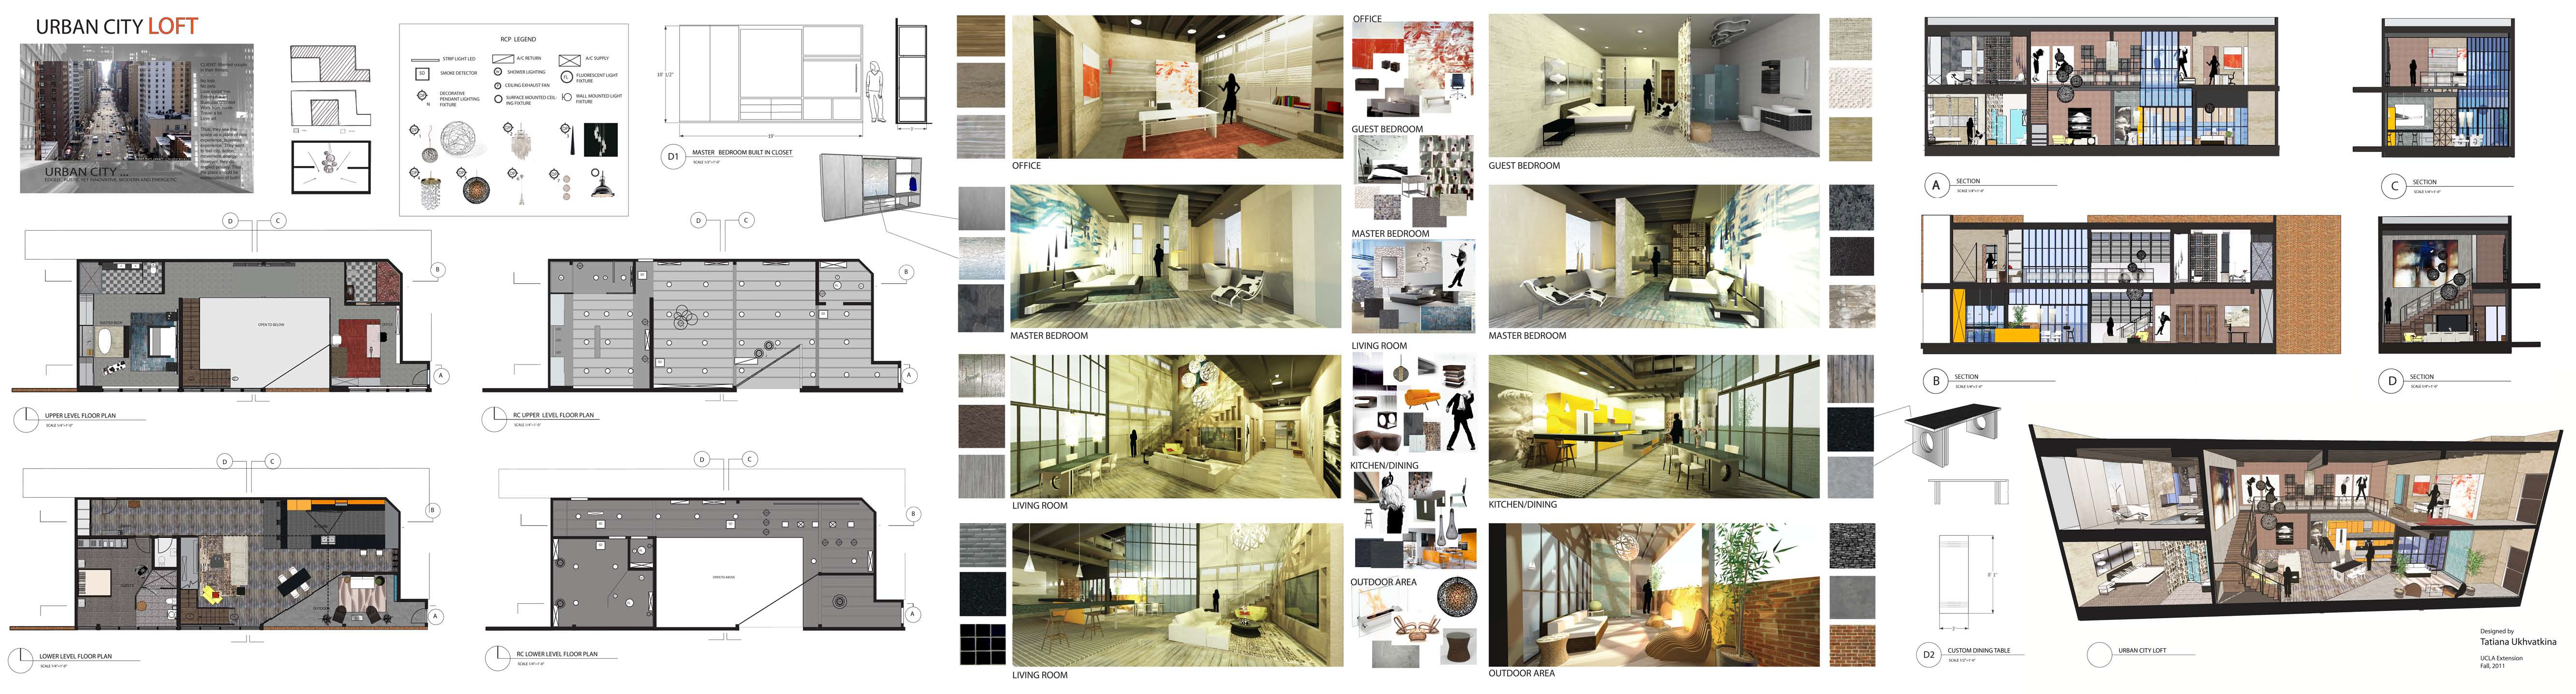 85 Interior Design Architecture Scholarships Scholarships Fellowships Internships Image